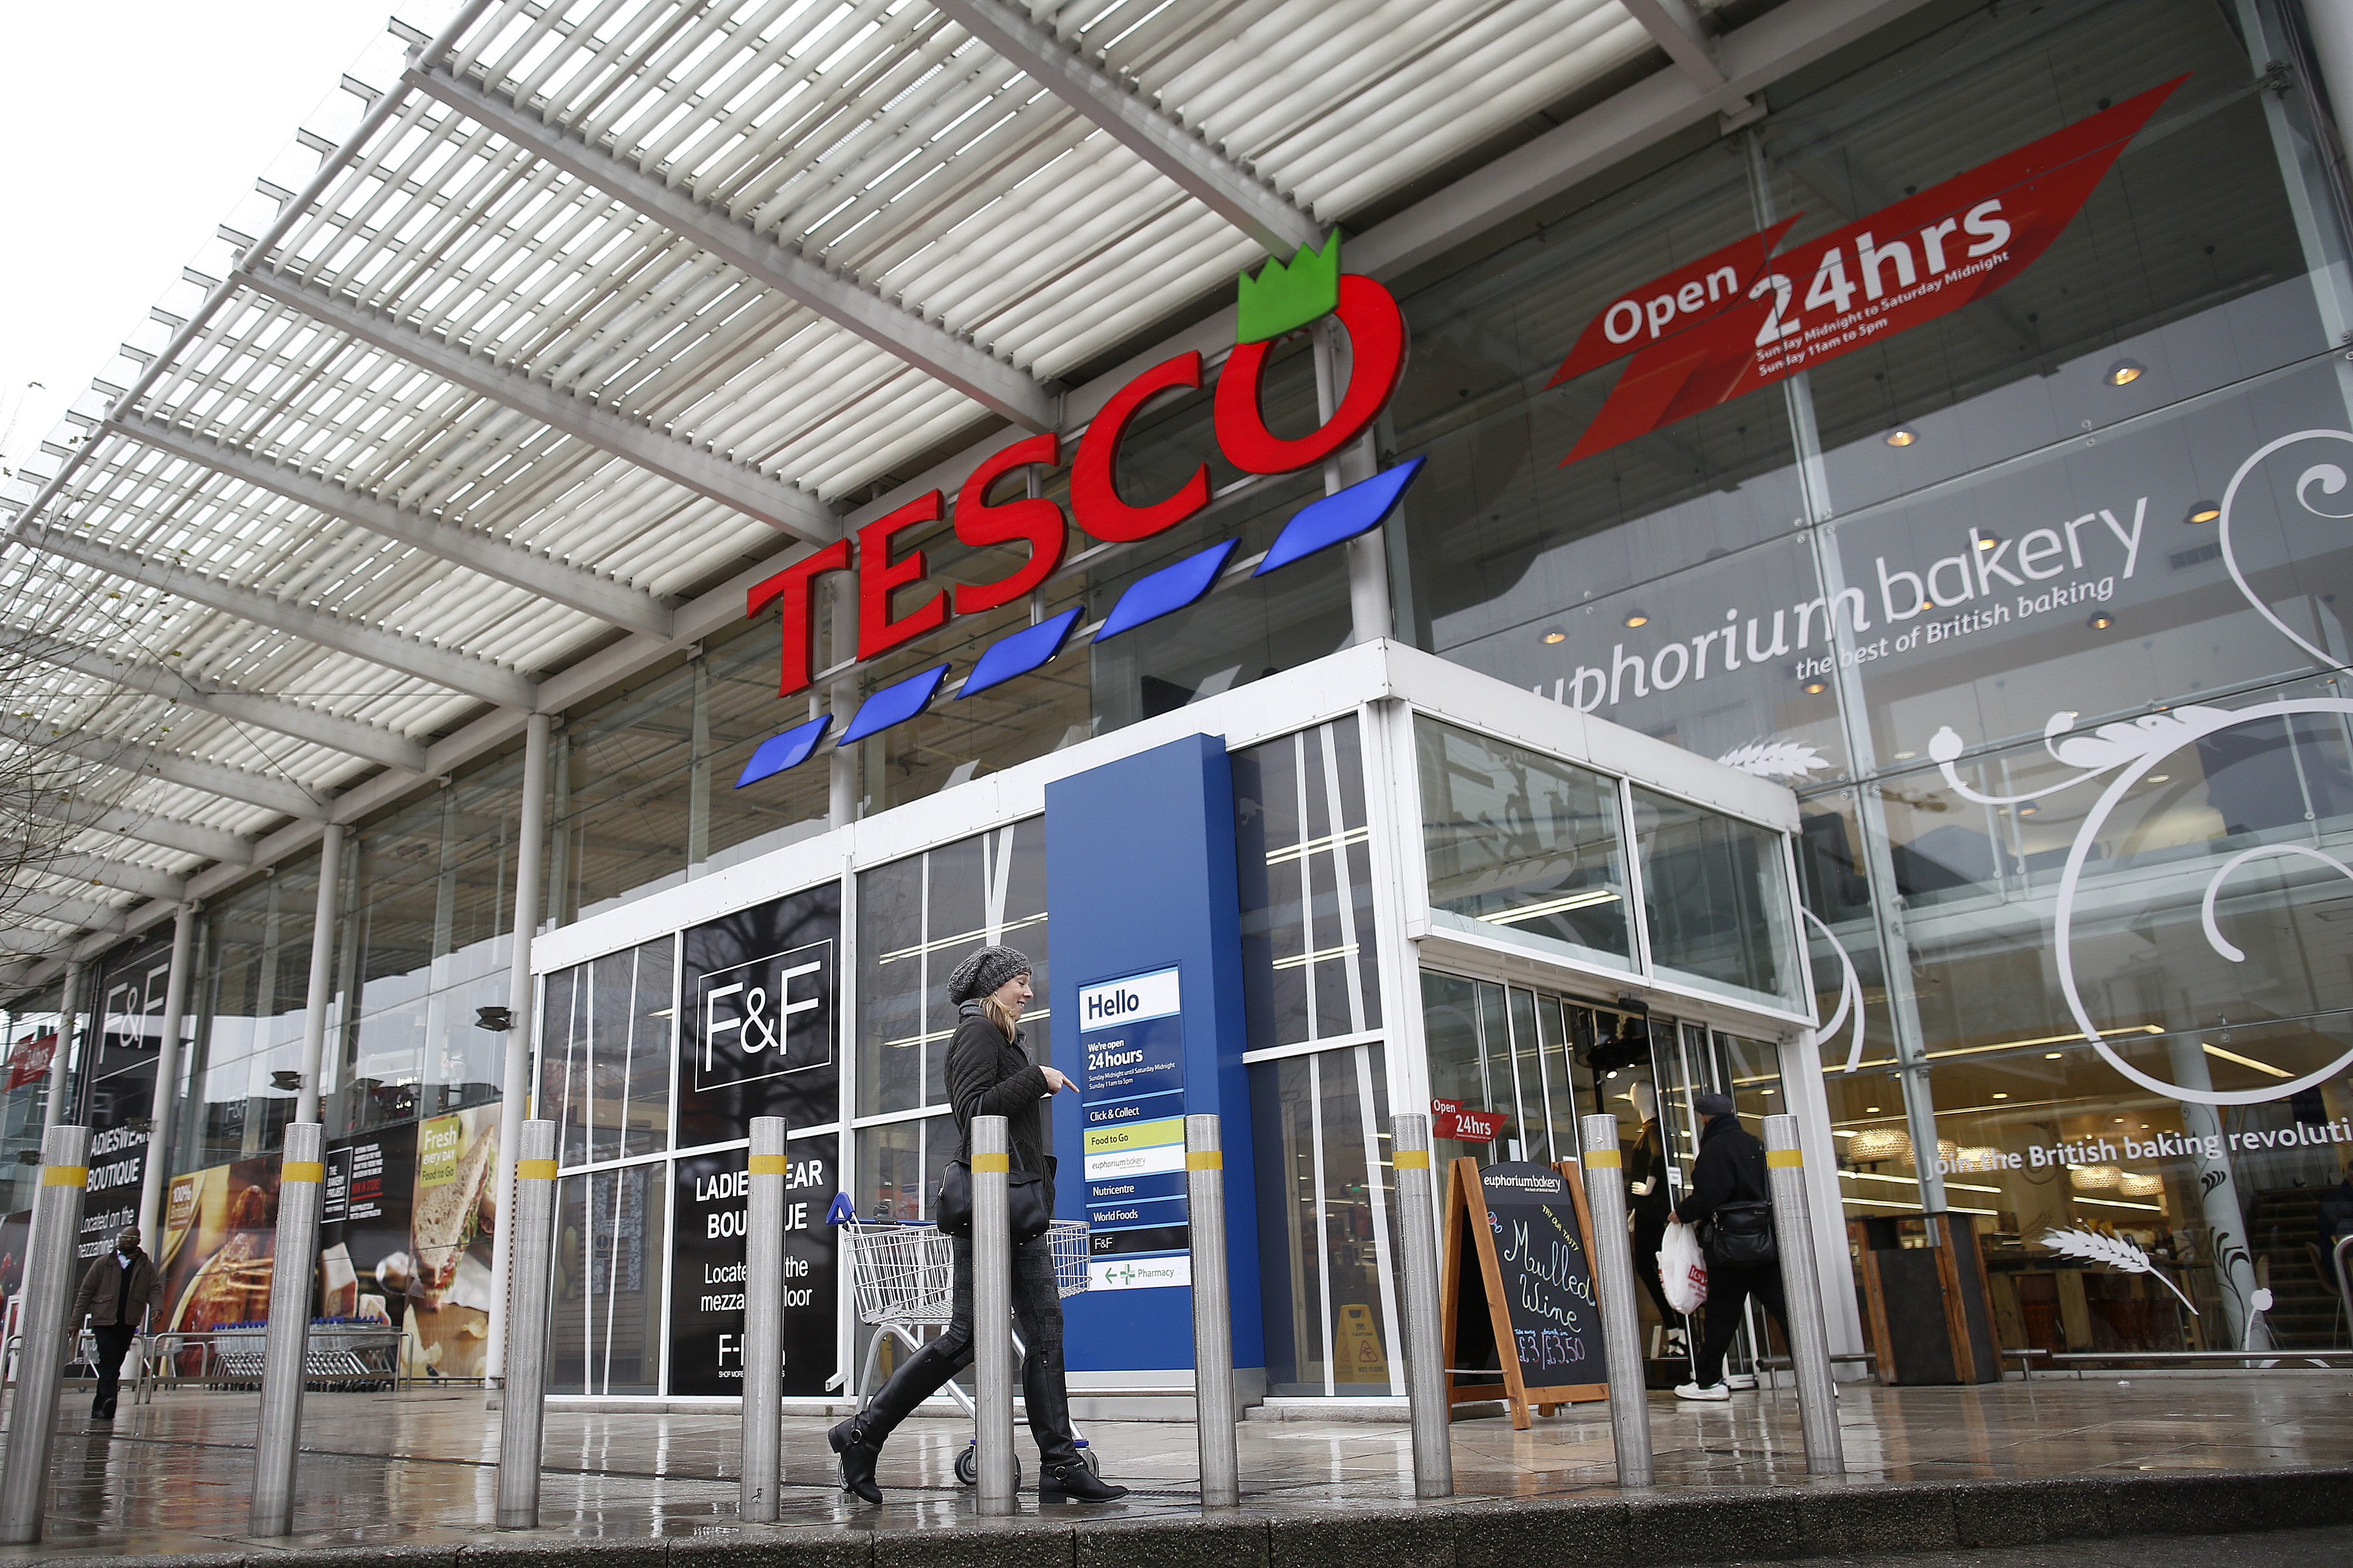 The way a Tesco employee helped a customer with cancer will restore your faith in humanity